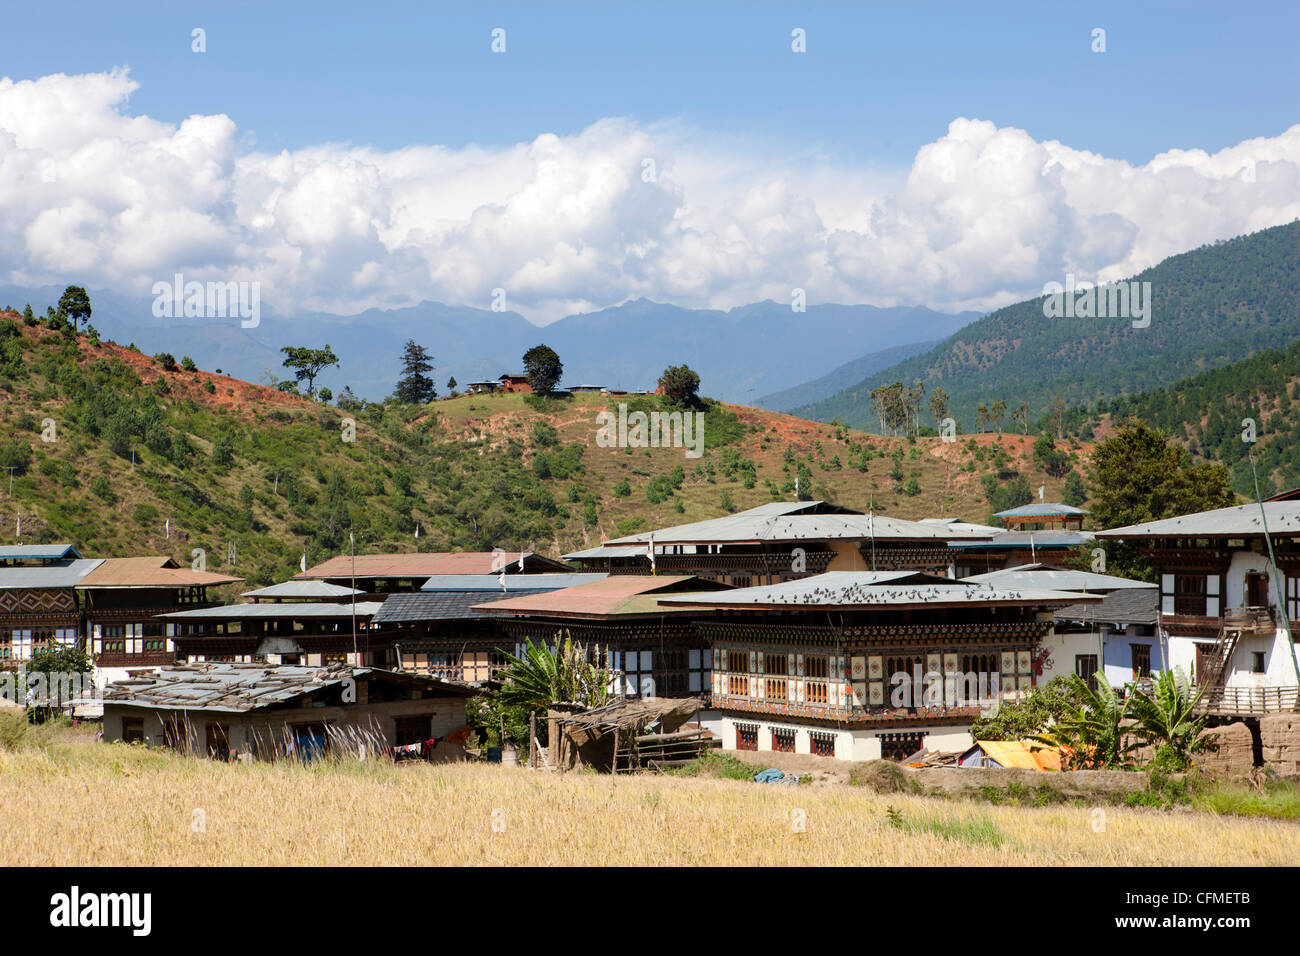 Tiny settlement of Pana in the Punakha Valley near Chimi, Lhakhang Temple, Punakha, Bhutan, Himalayas, Asia - Stock Image